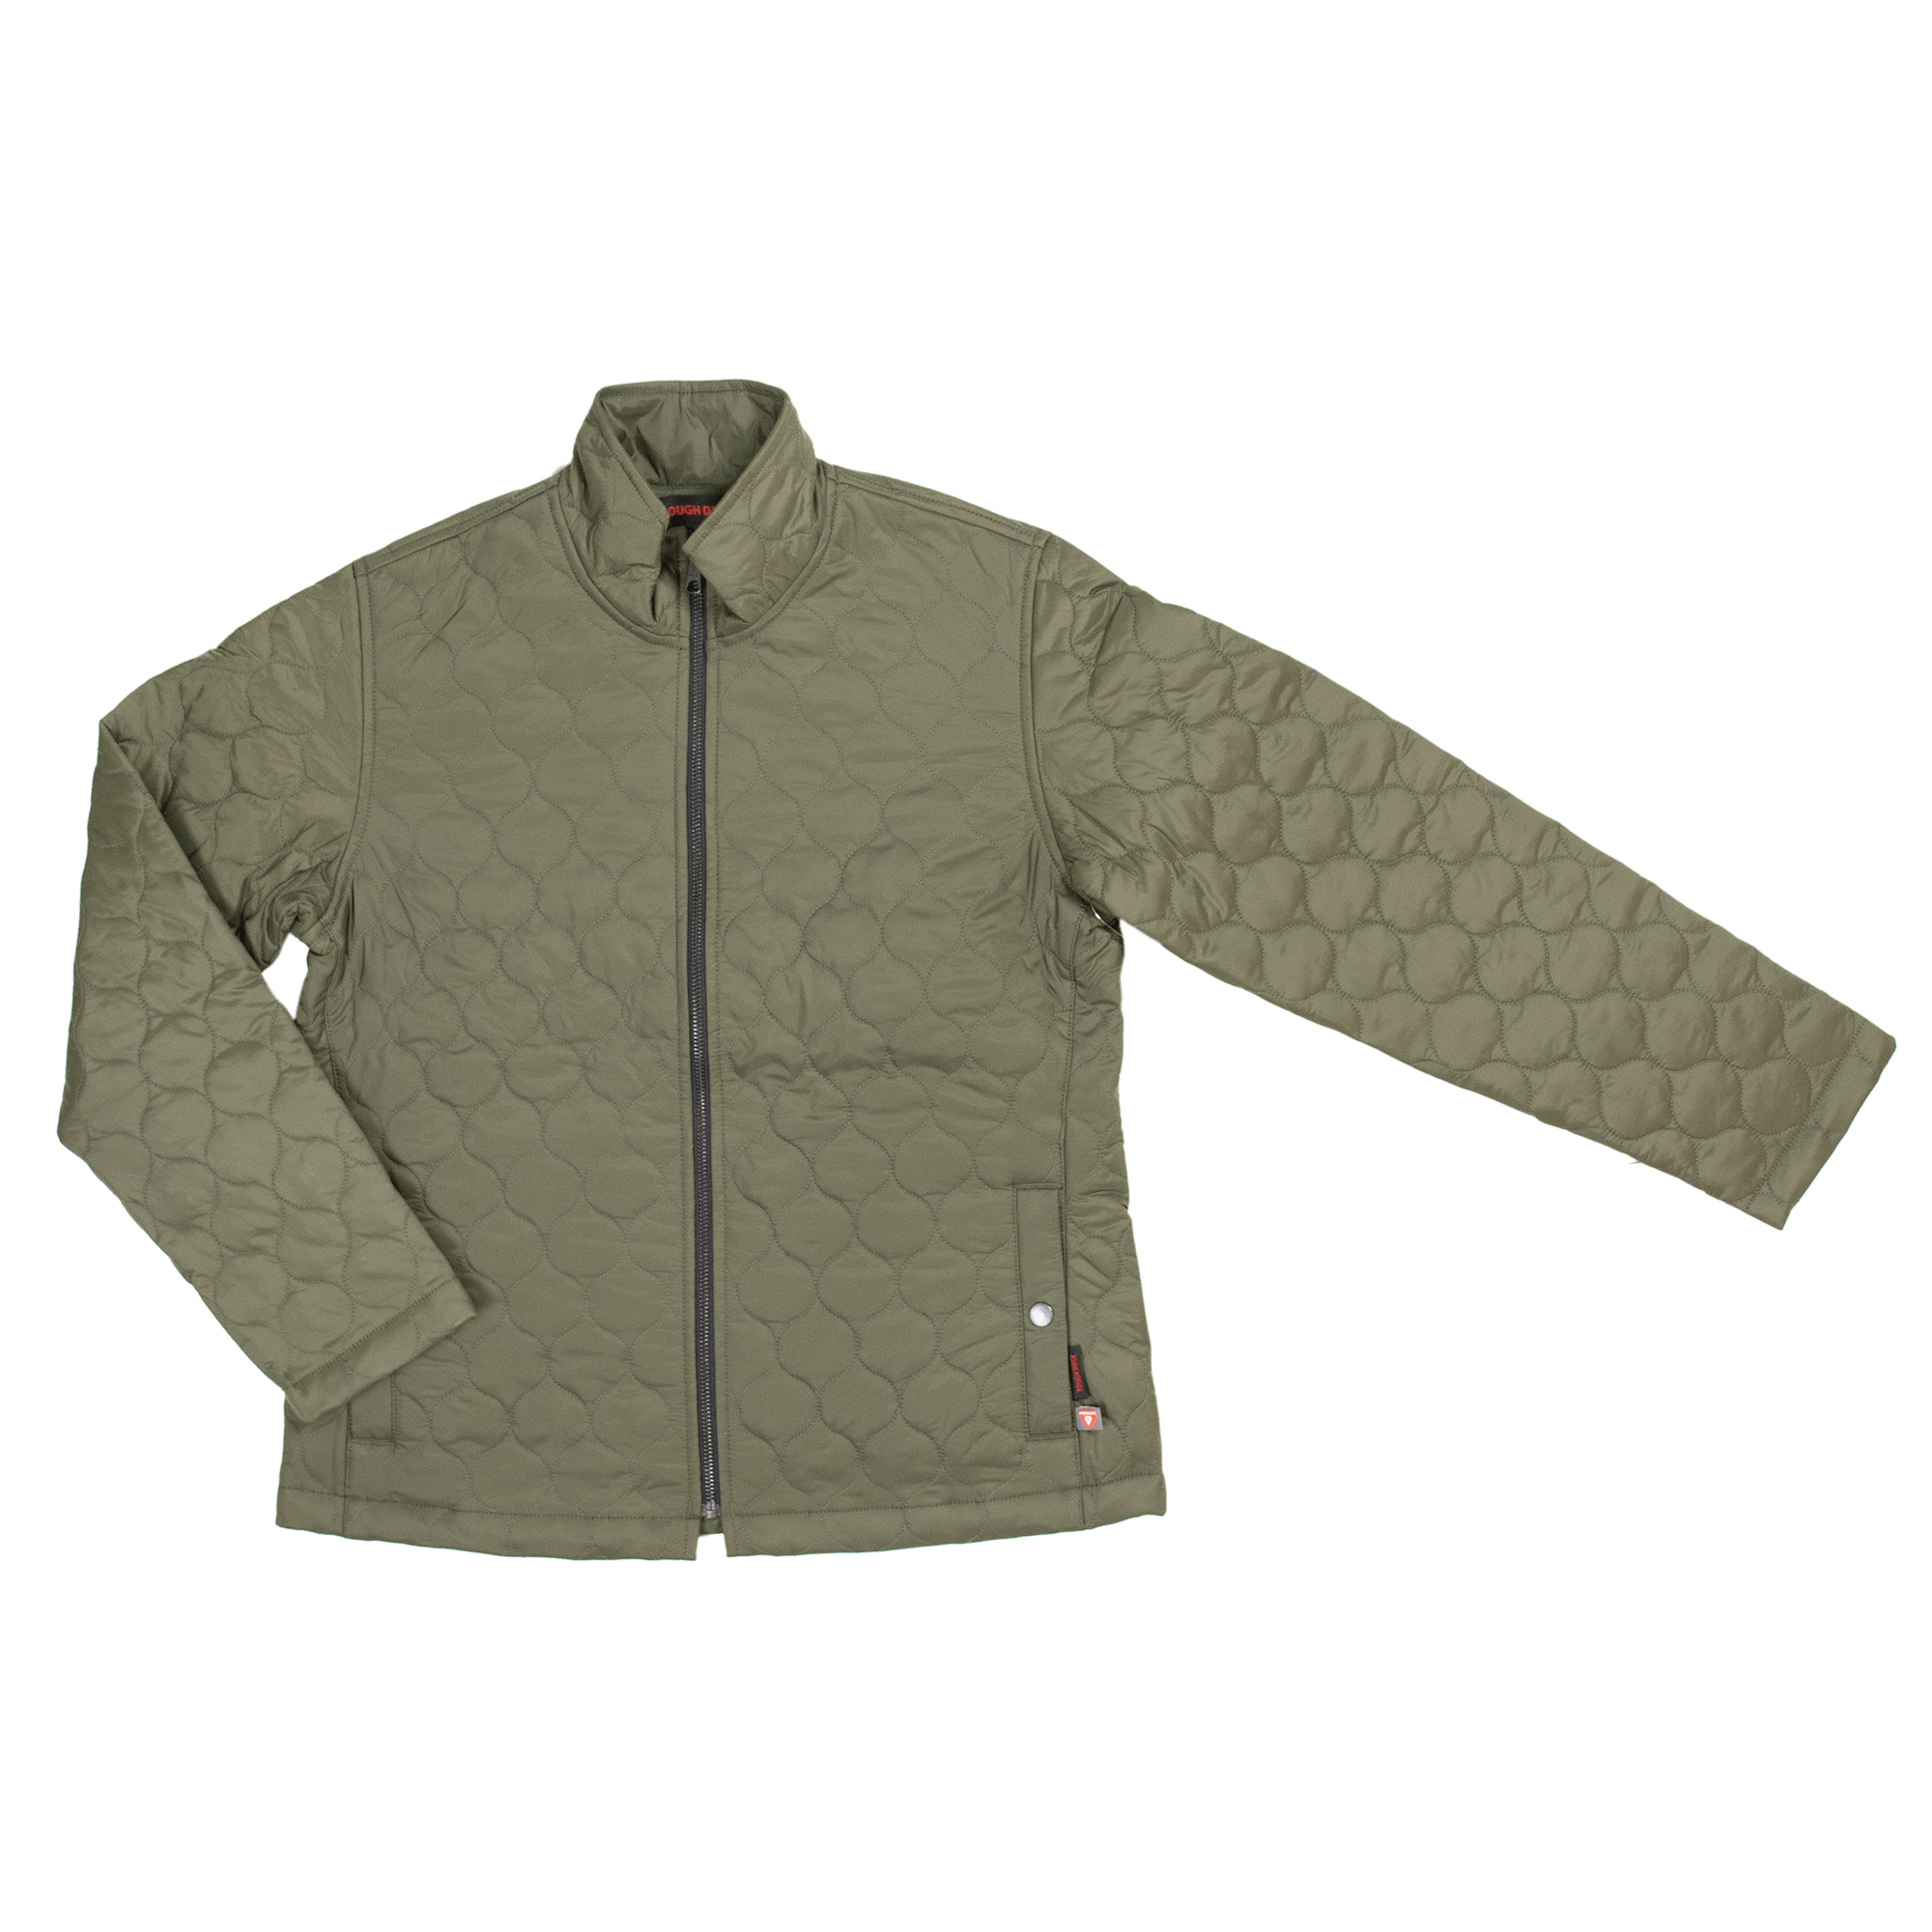 https://0901.nccdn.net/4_2/000/000/046/6ea/wj29-olive-f-tough-duck-womens-quilted-jacket-olive-front.png